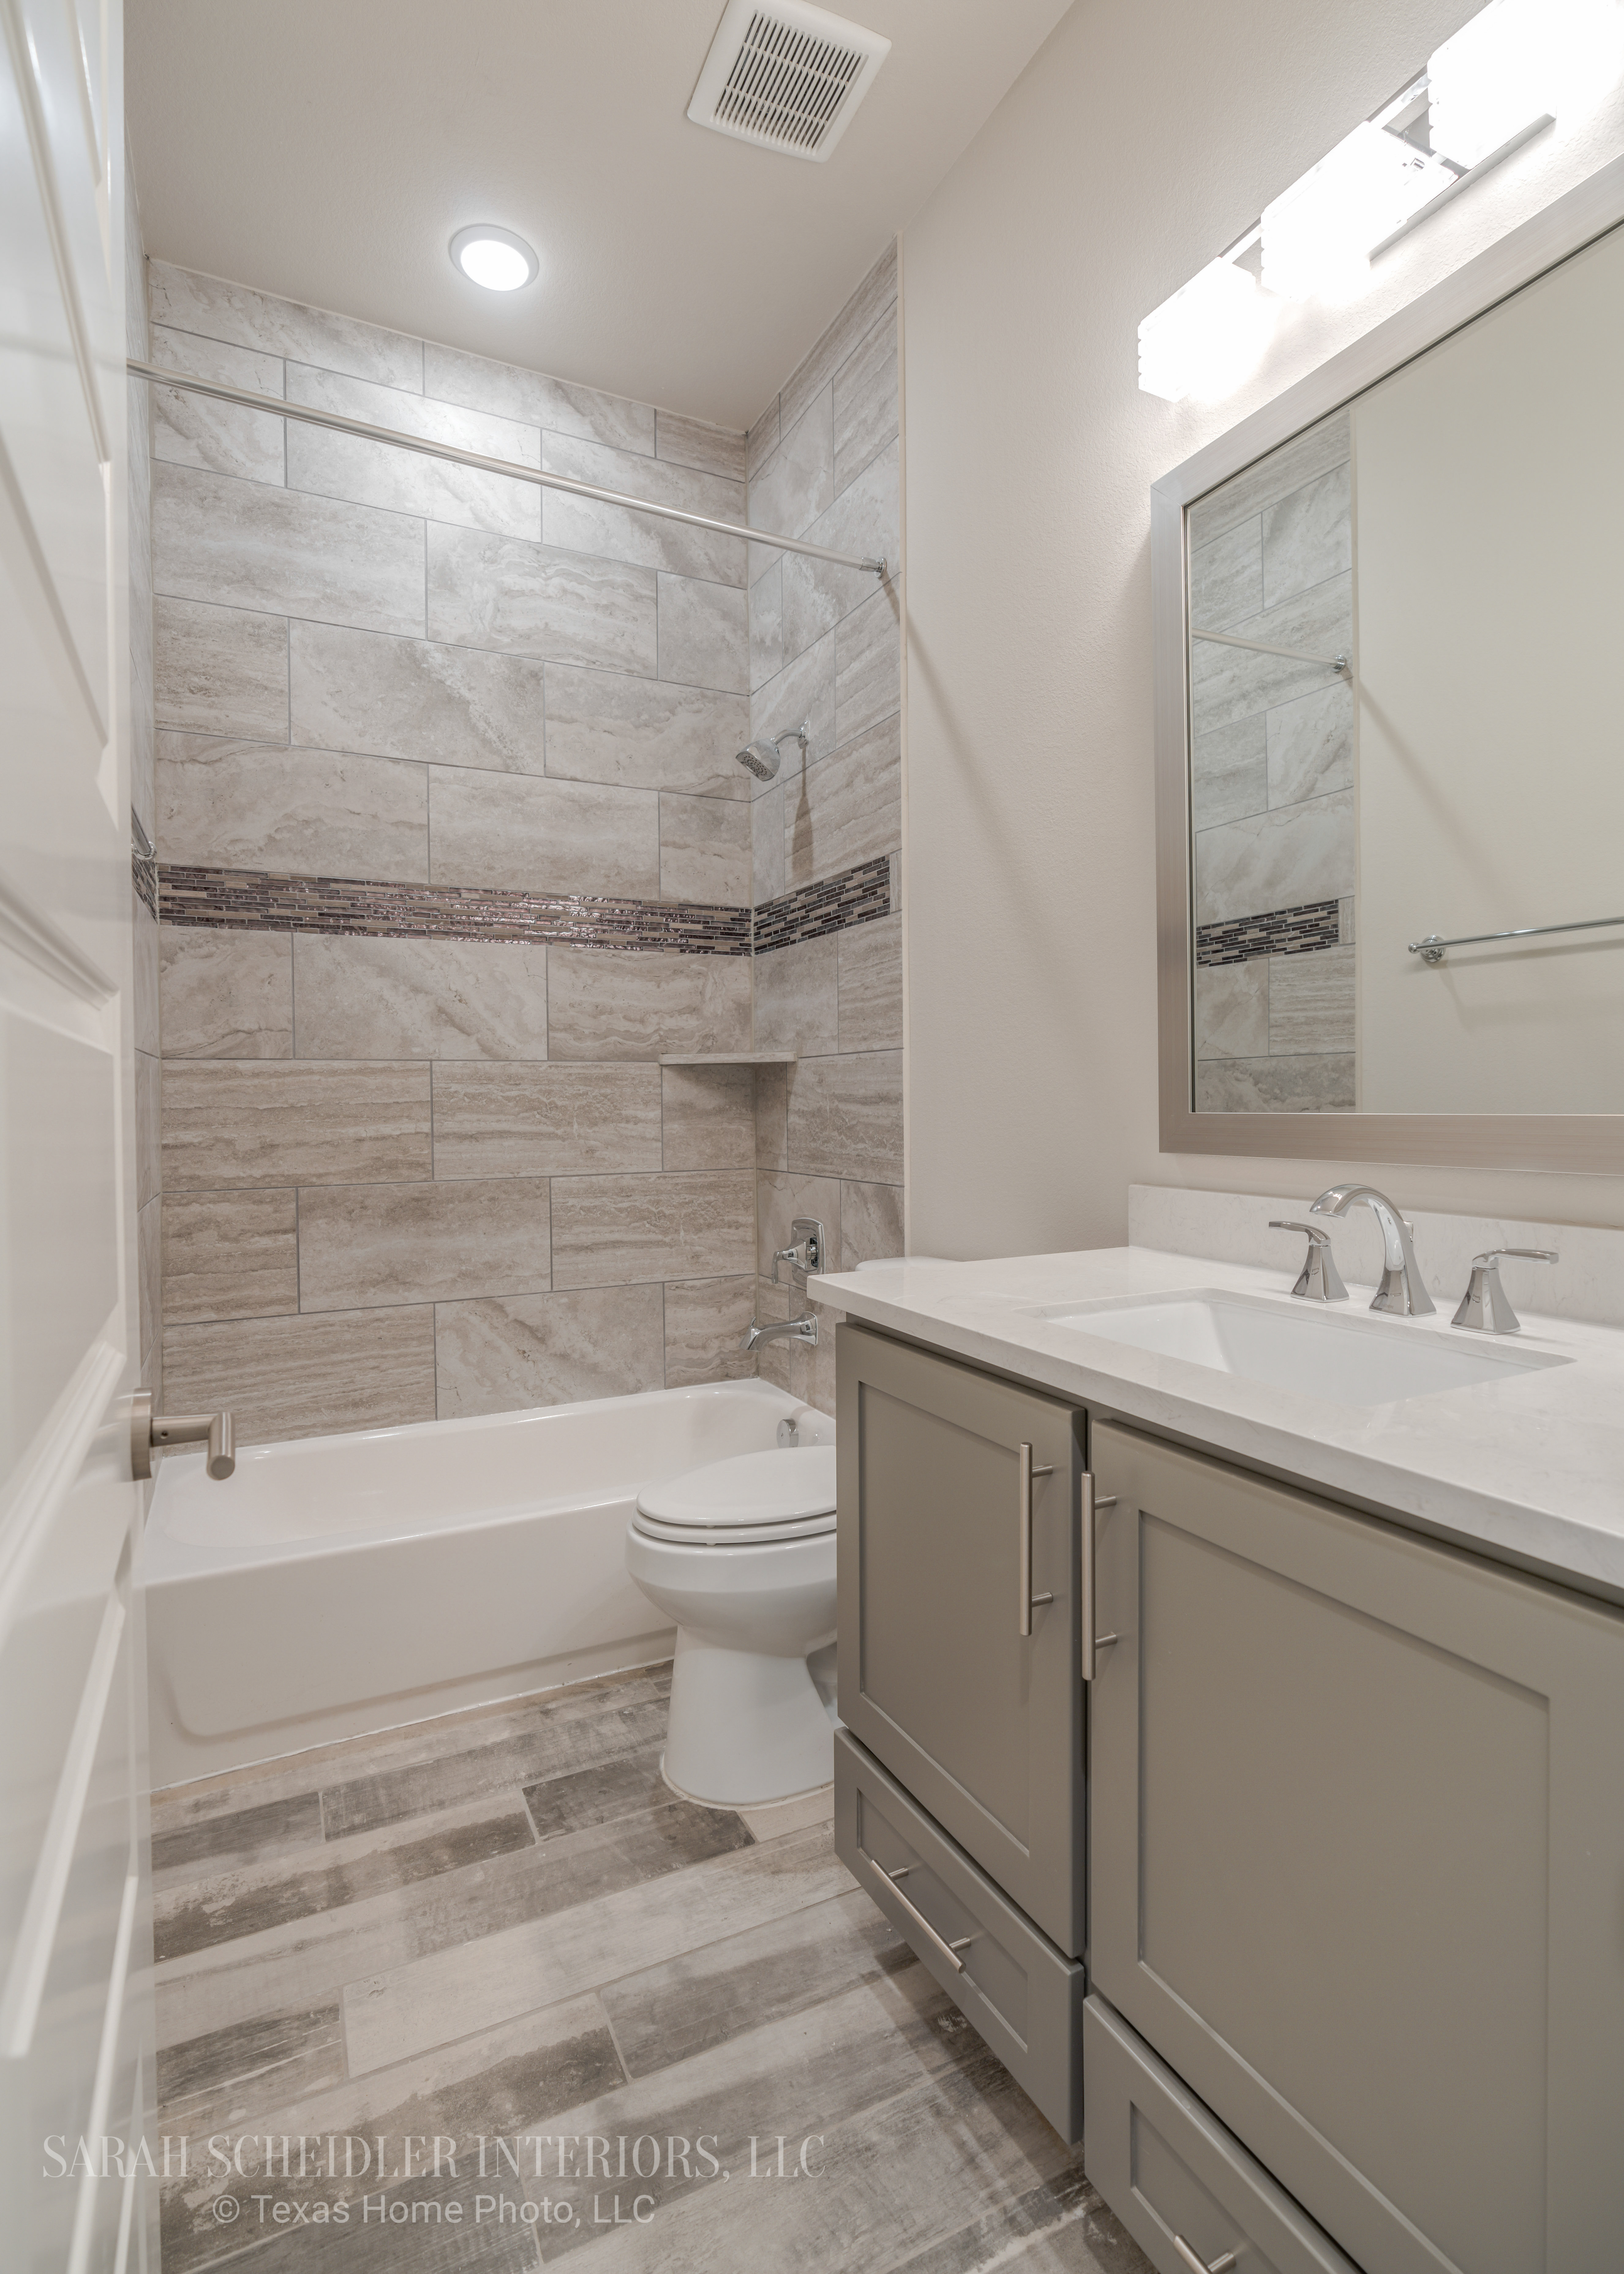 Grey Secondary Bathroom Design with Silestone Quartz Countertops, Chrome Accents, and Rustic Wood Tile Flooring